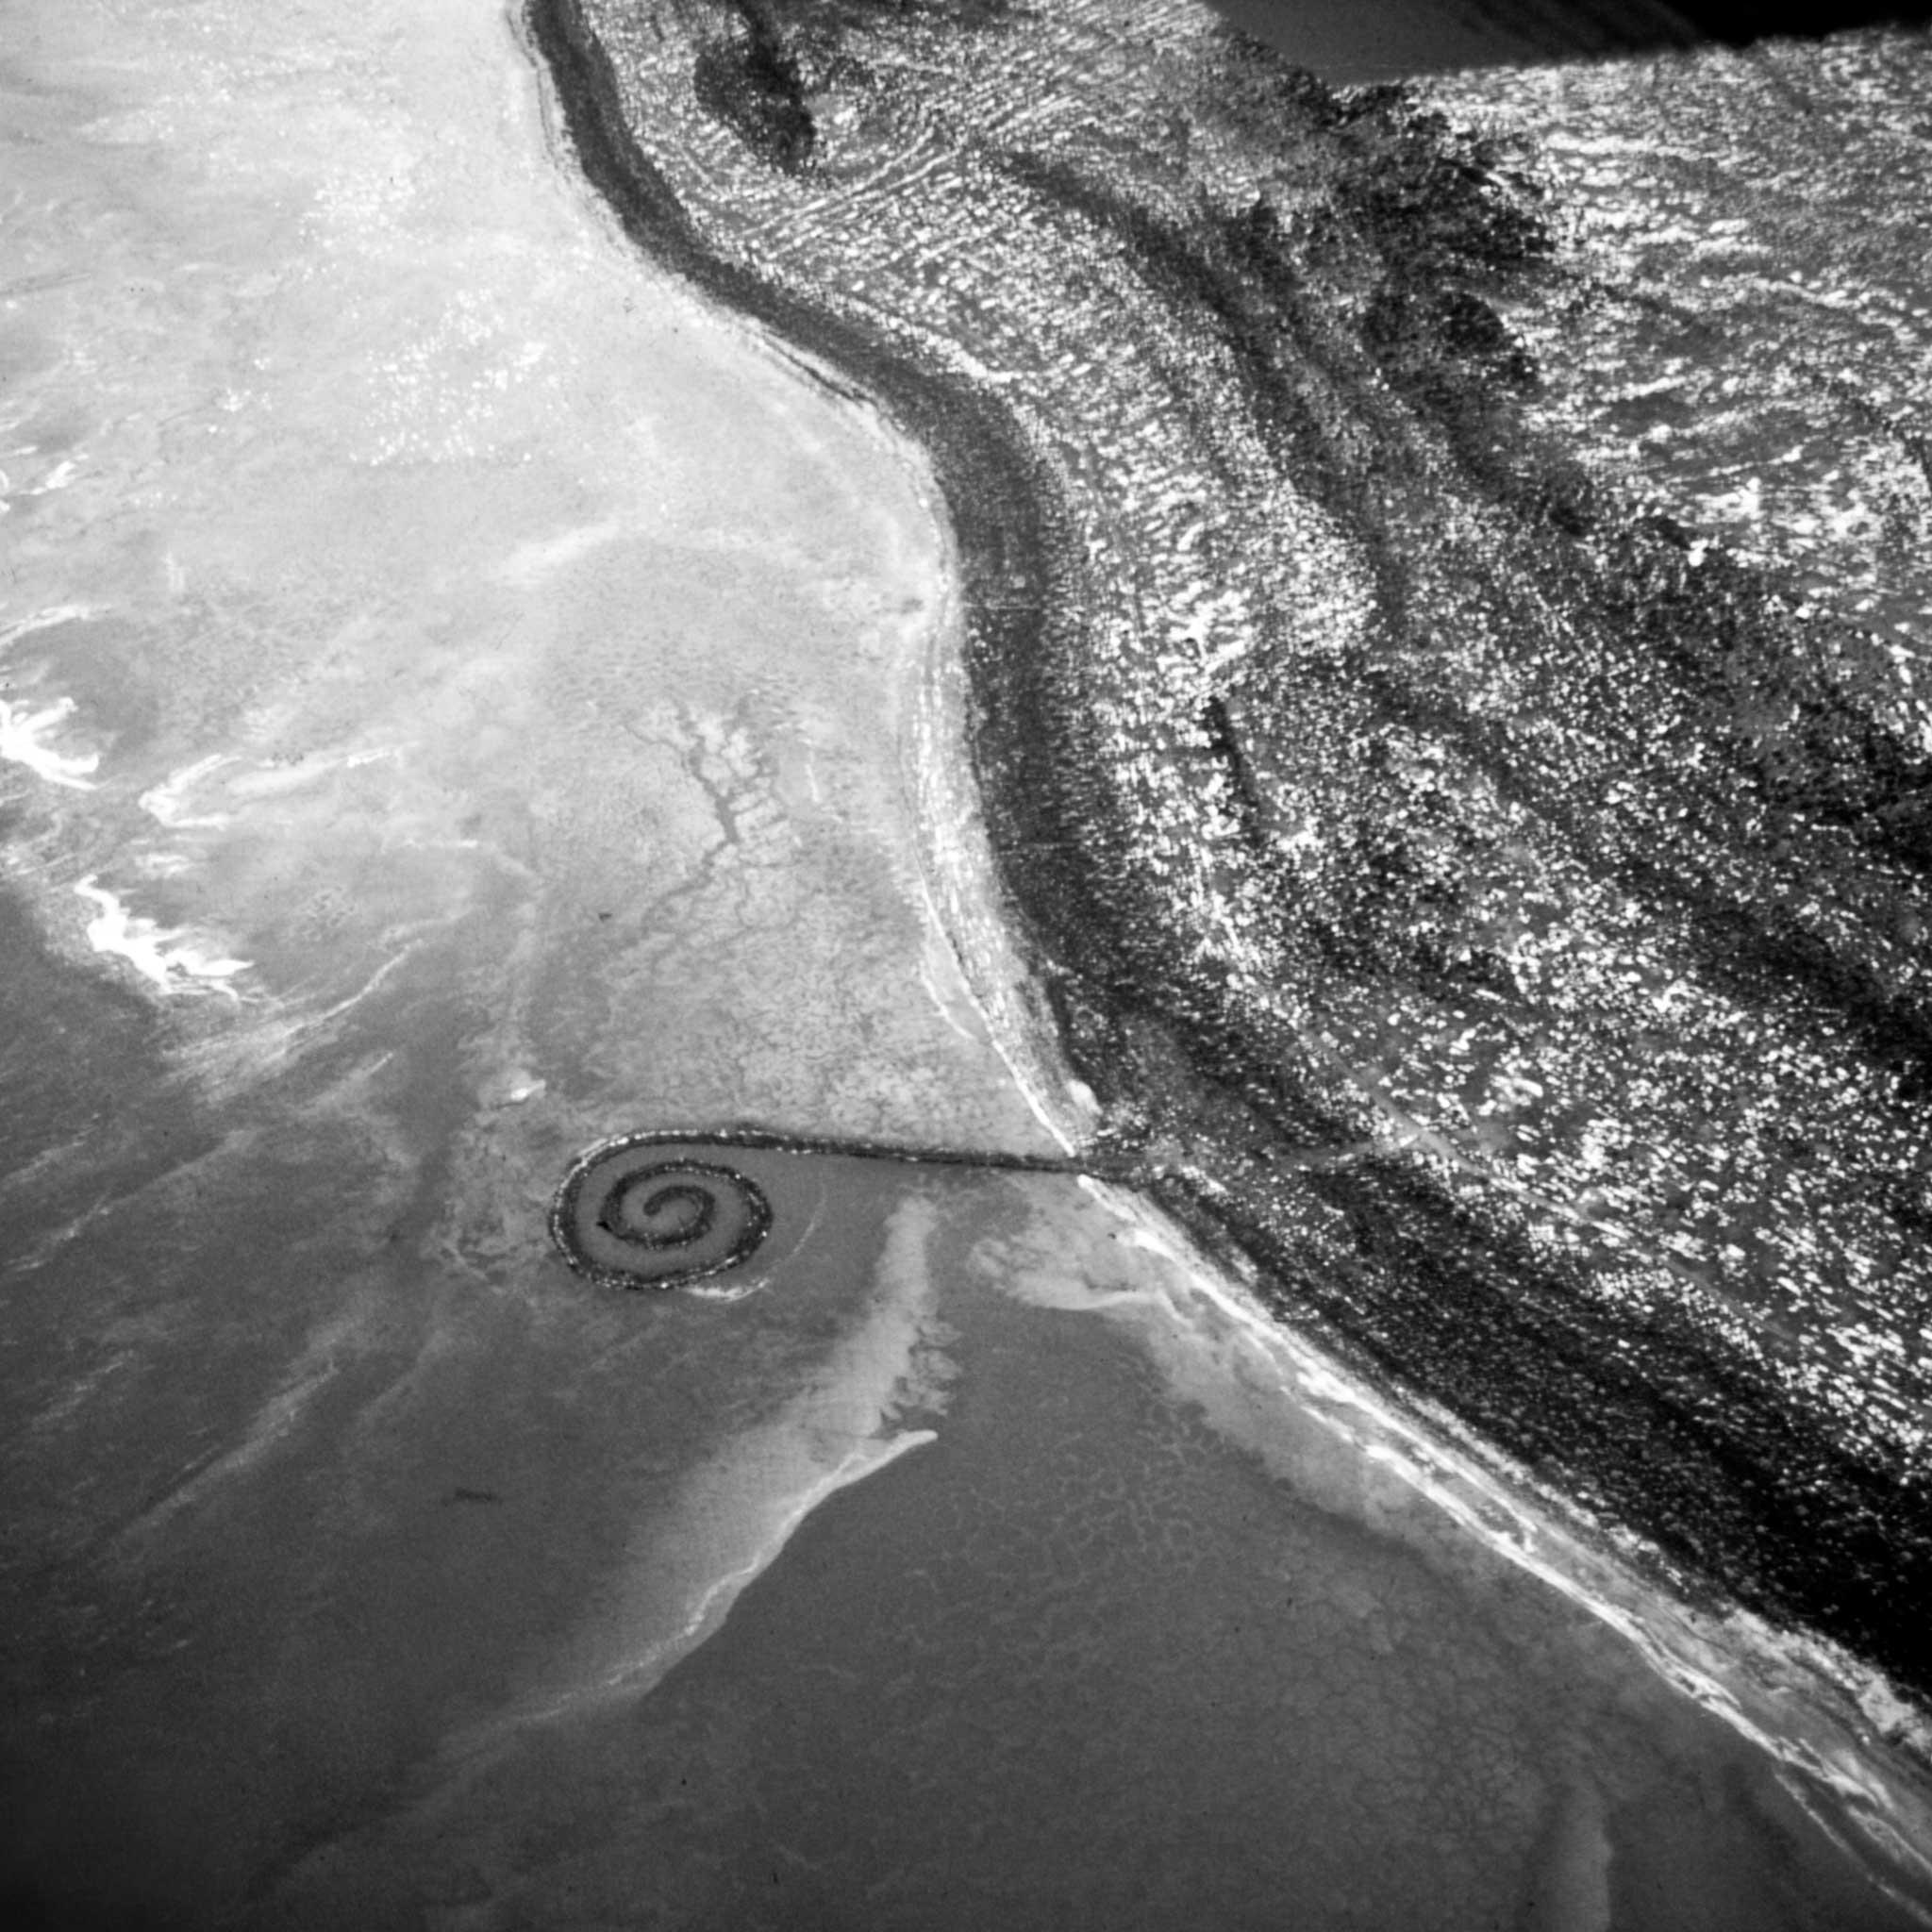 black and white, aerial image or an earthen jetty with a spiral termination extending out from the shore into a body of water